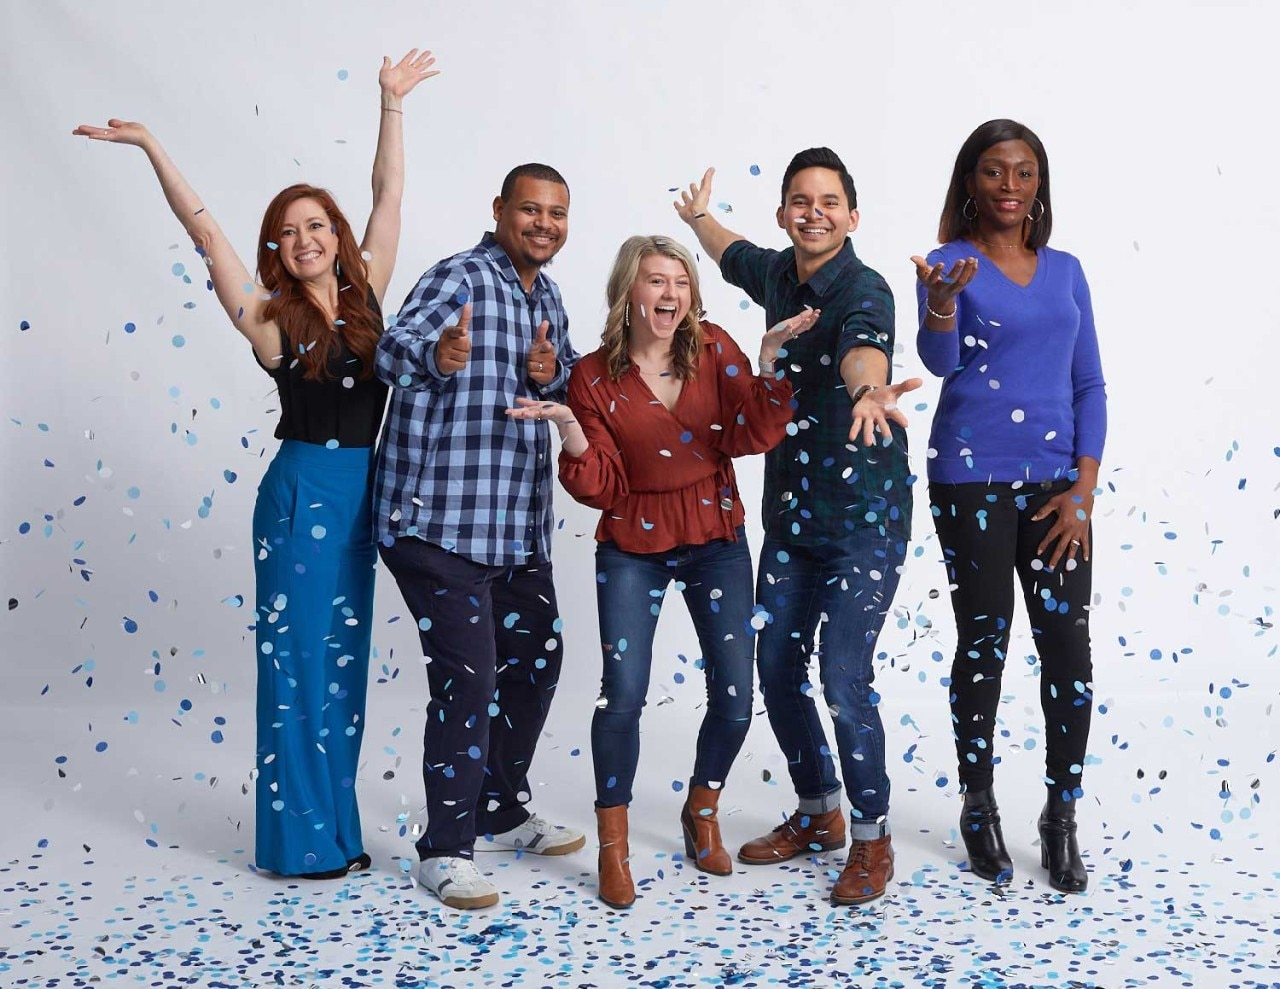 Five SAS employees celebrating with confetti shower